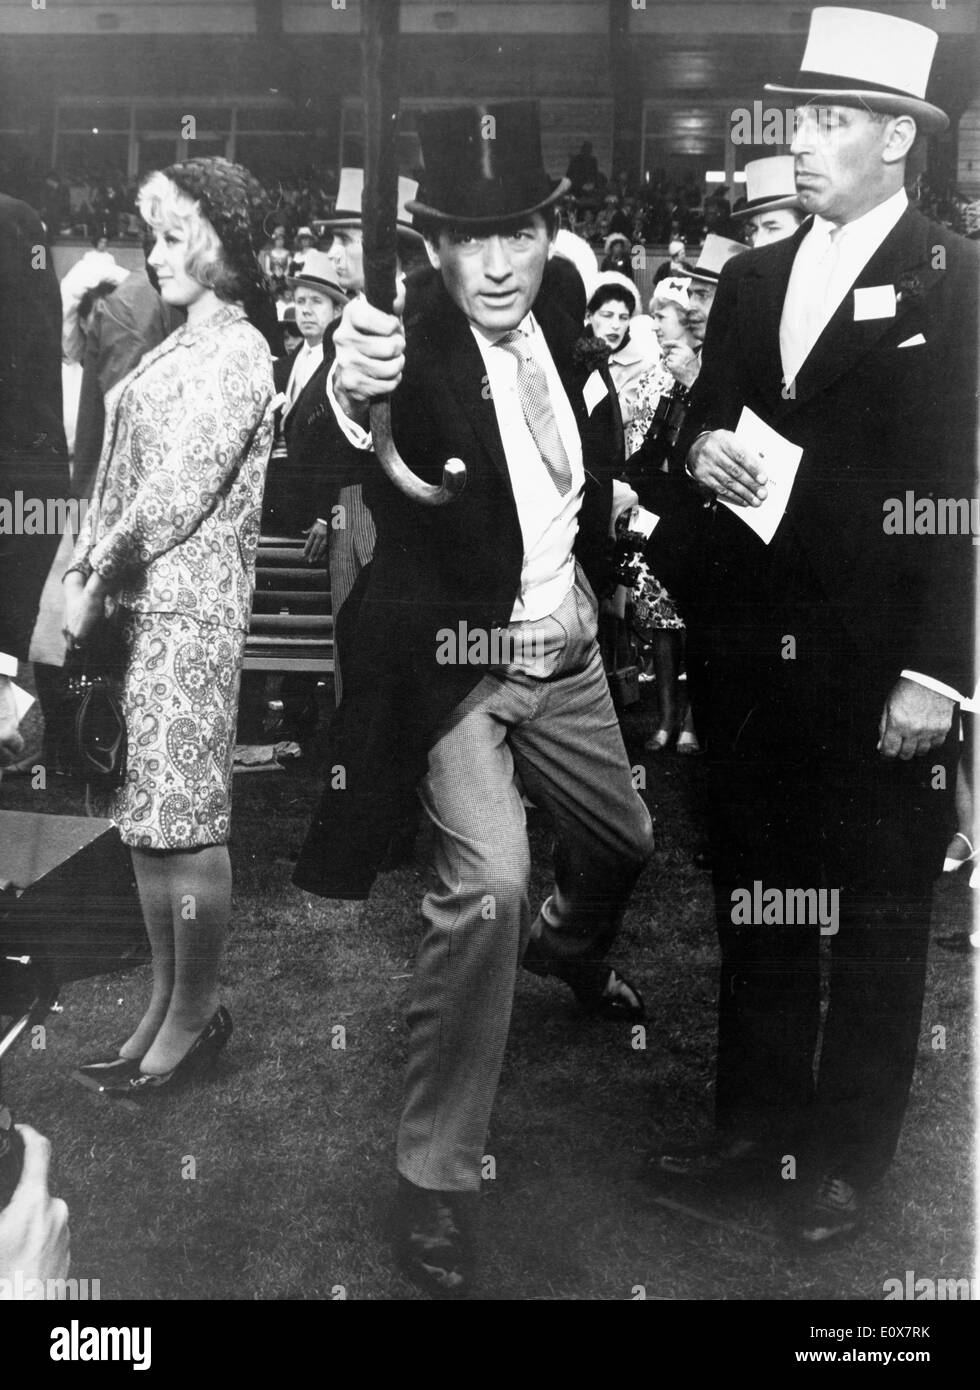 Actor Gregory Peck filming 'Arabesque' - Stock Image